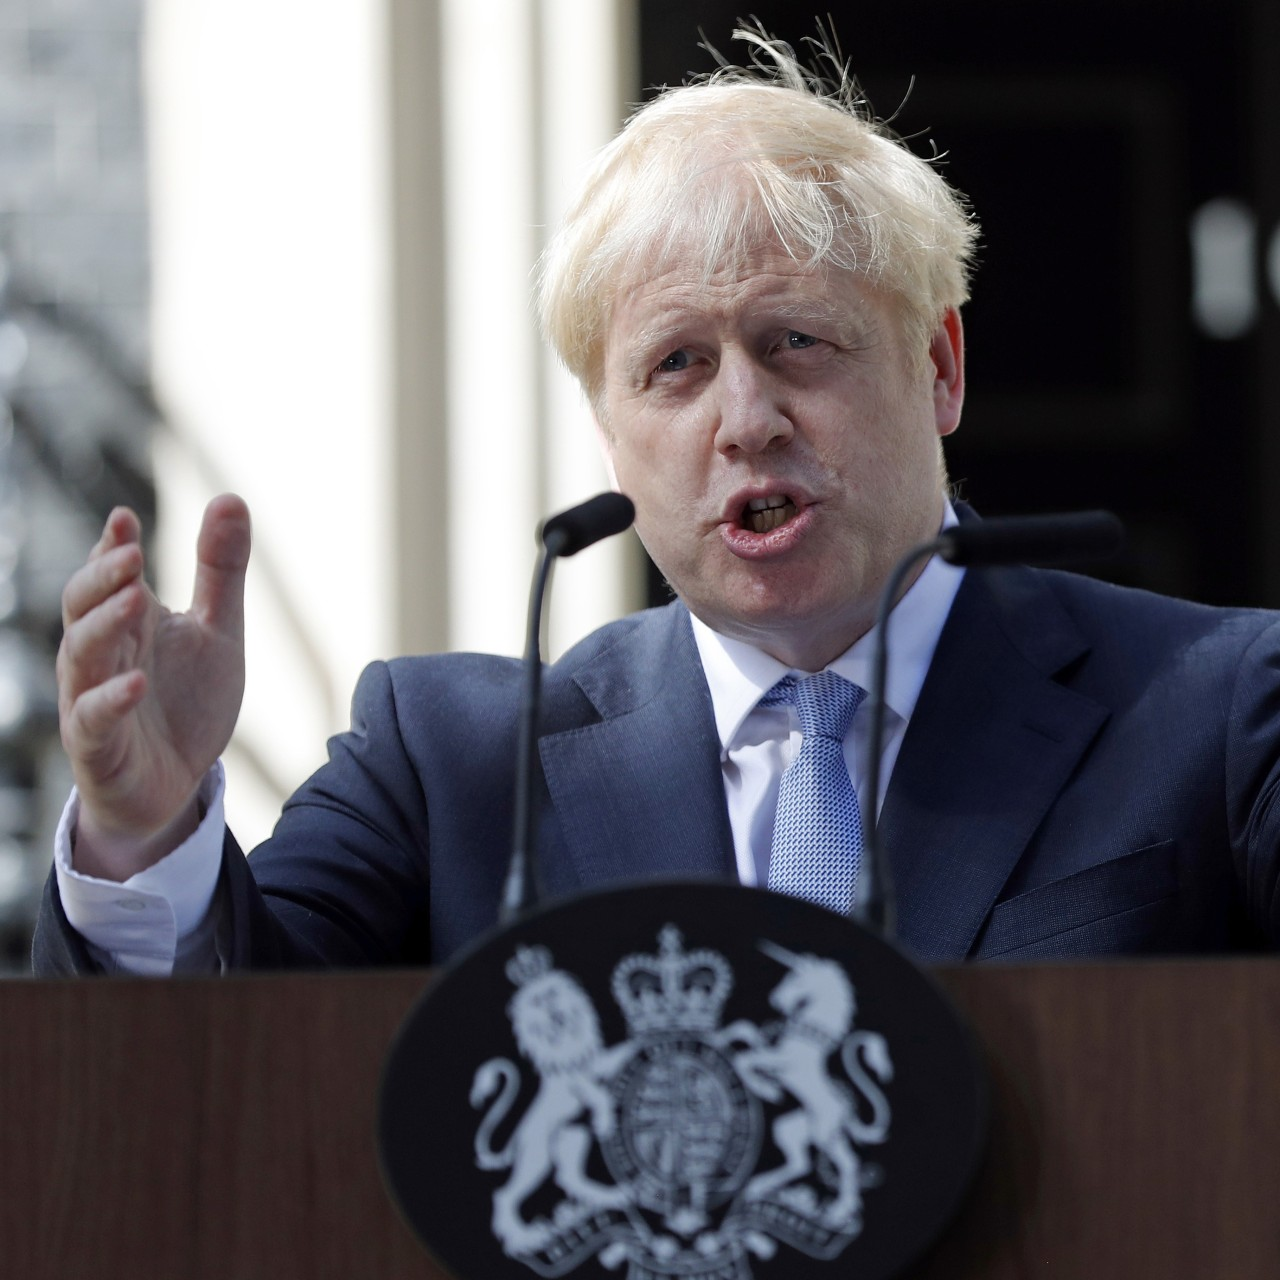 Boris Johnson's spending spree fuels rumours of early UK election